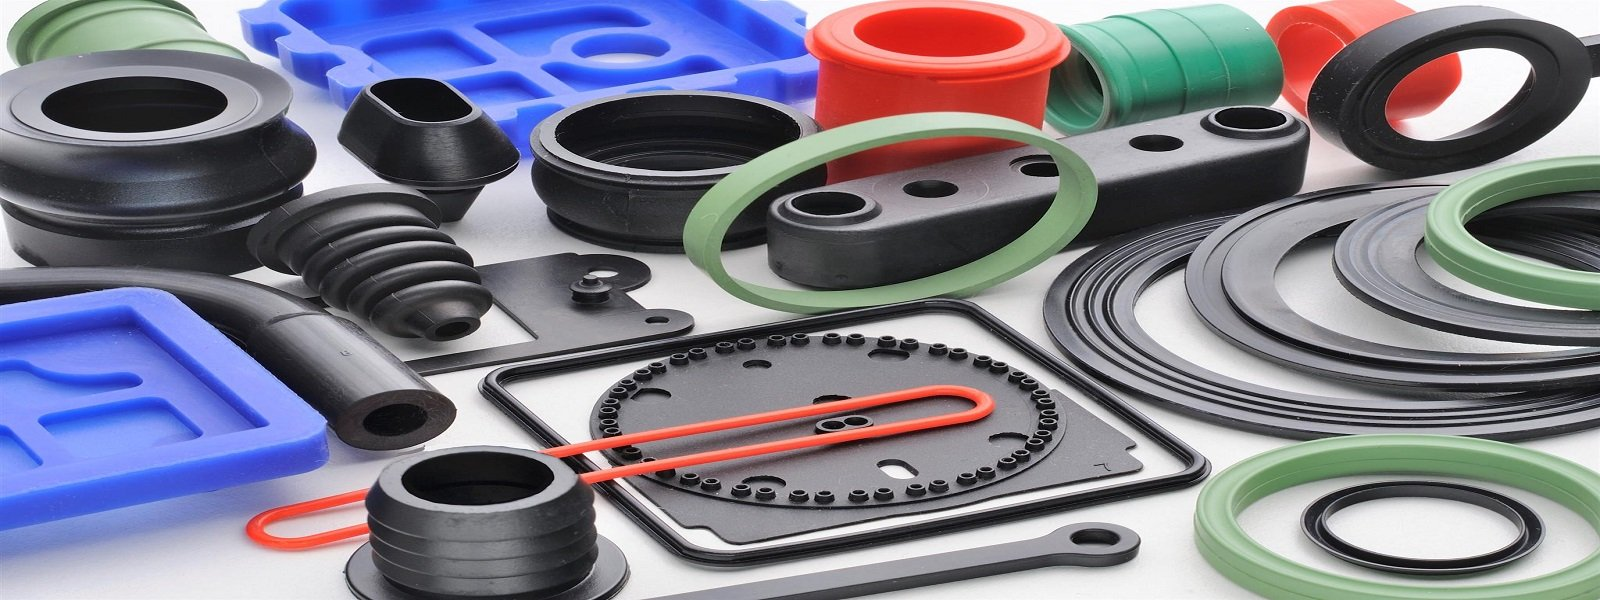 Custom Manufactured Silicone Rubber Products